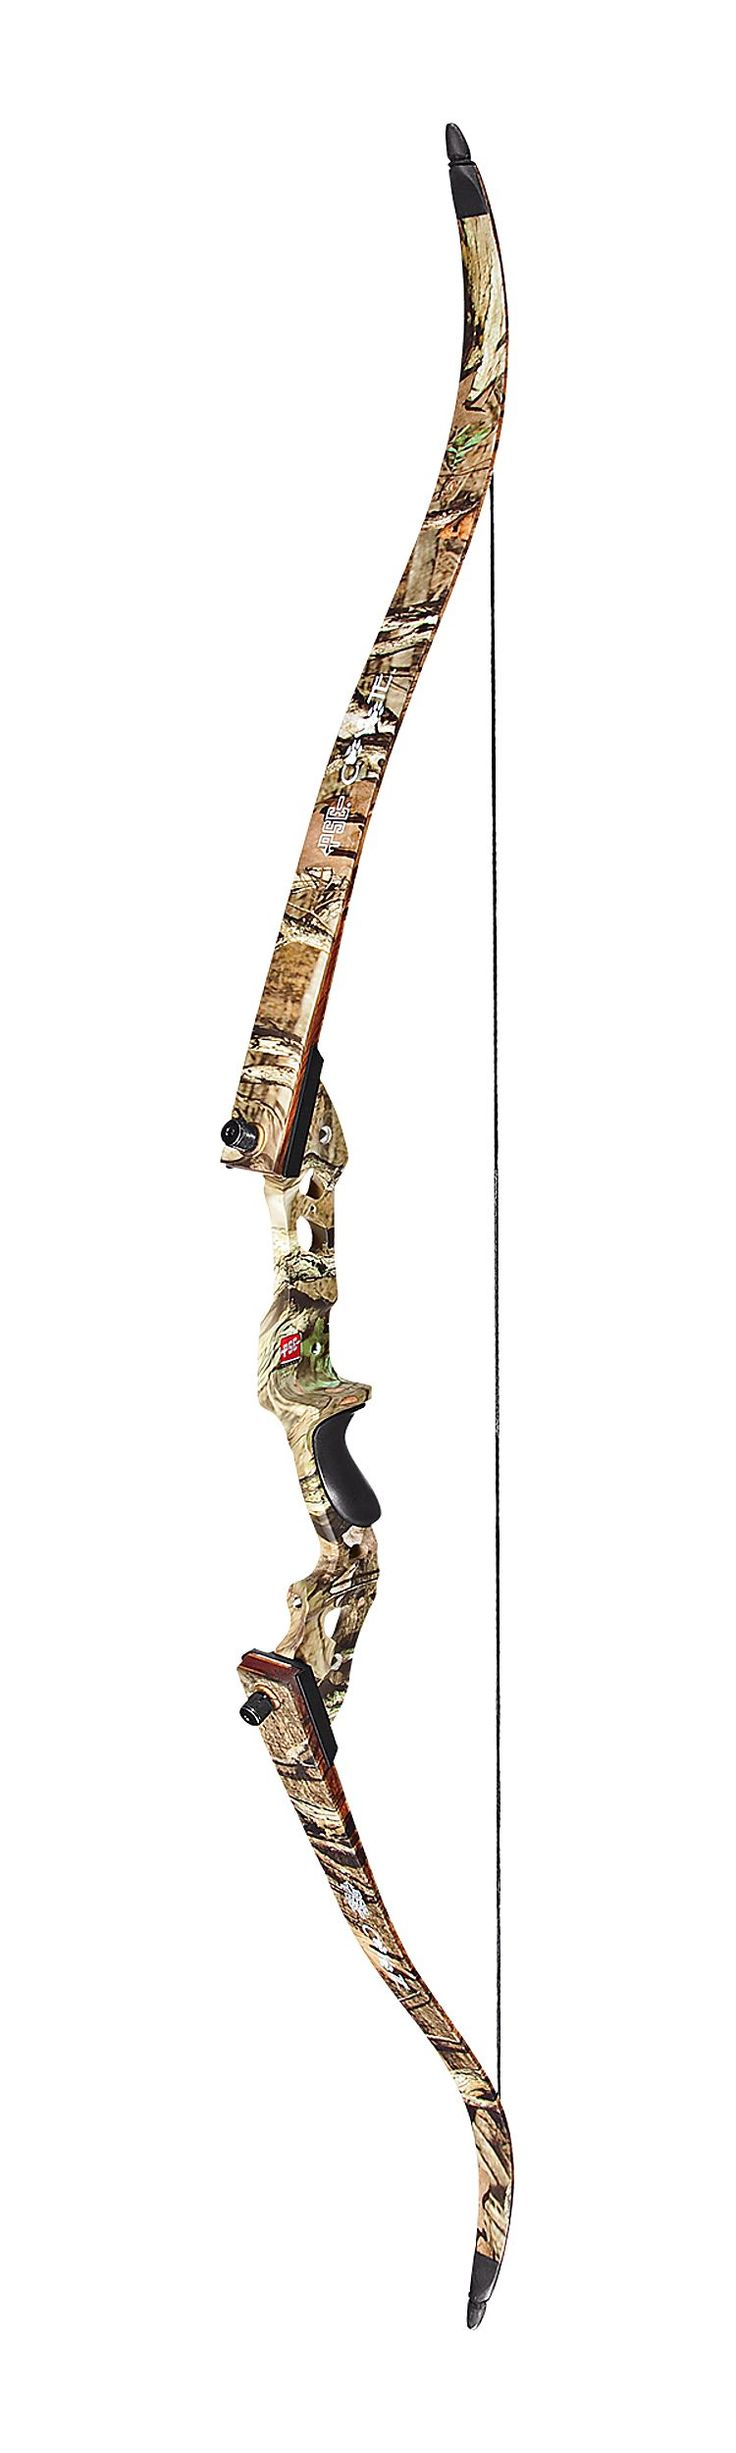 PSE Archery Coyote Recurve Bows | Bass Pro Shops